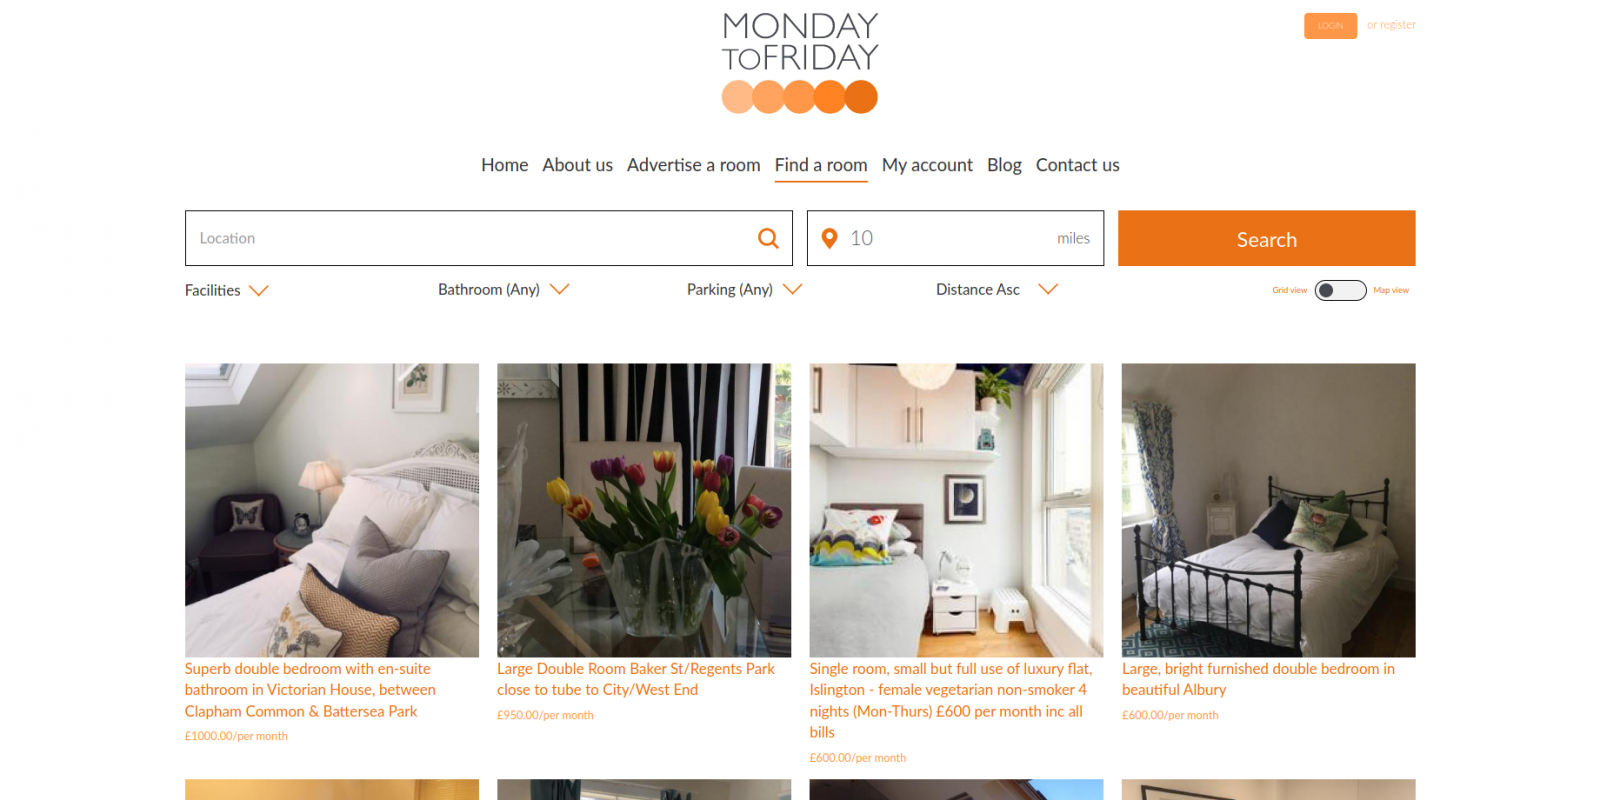 Monday to Friday room rental website - room search page